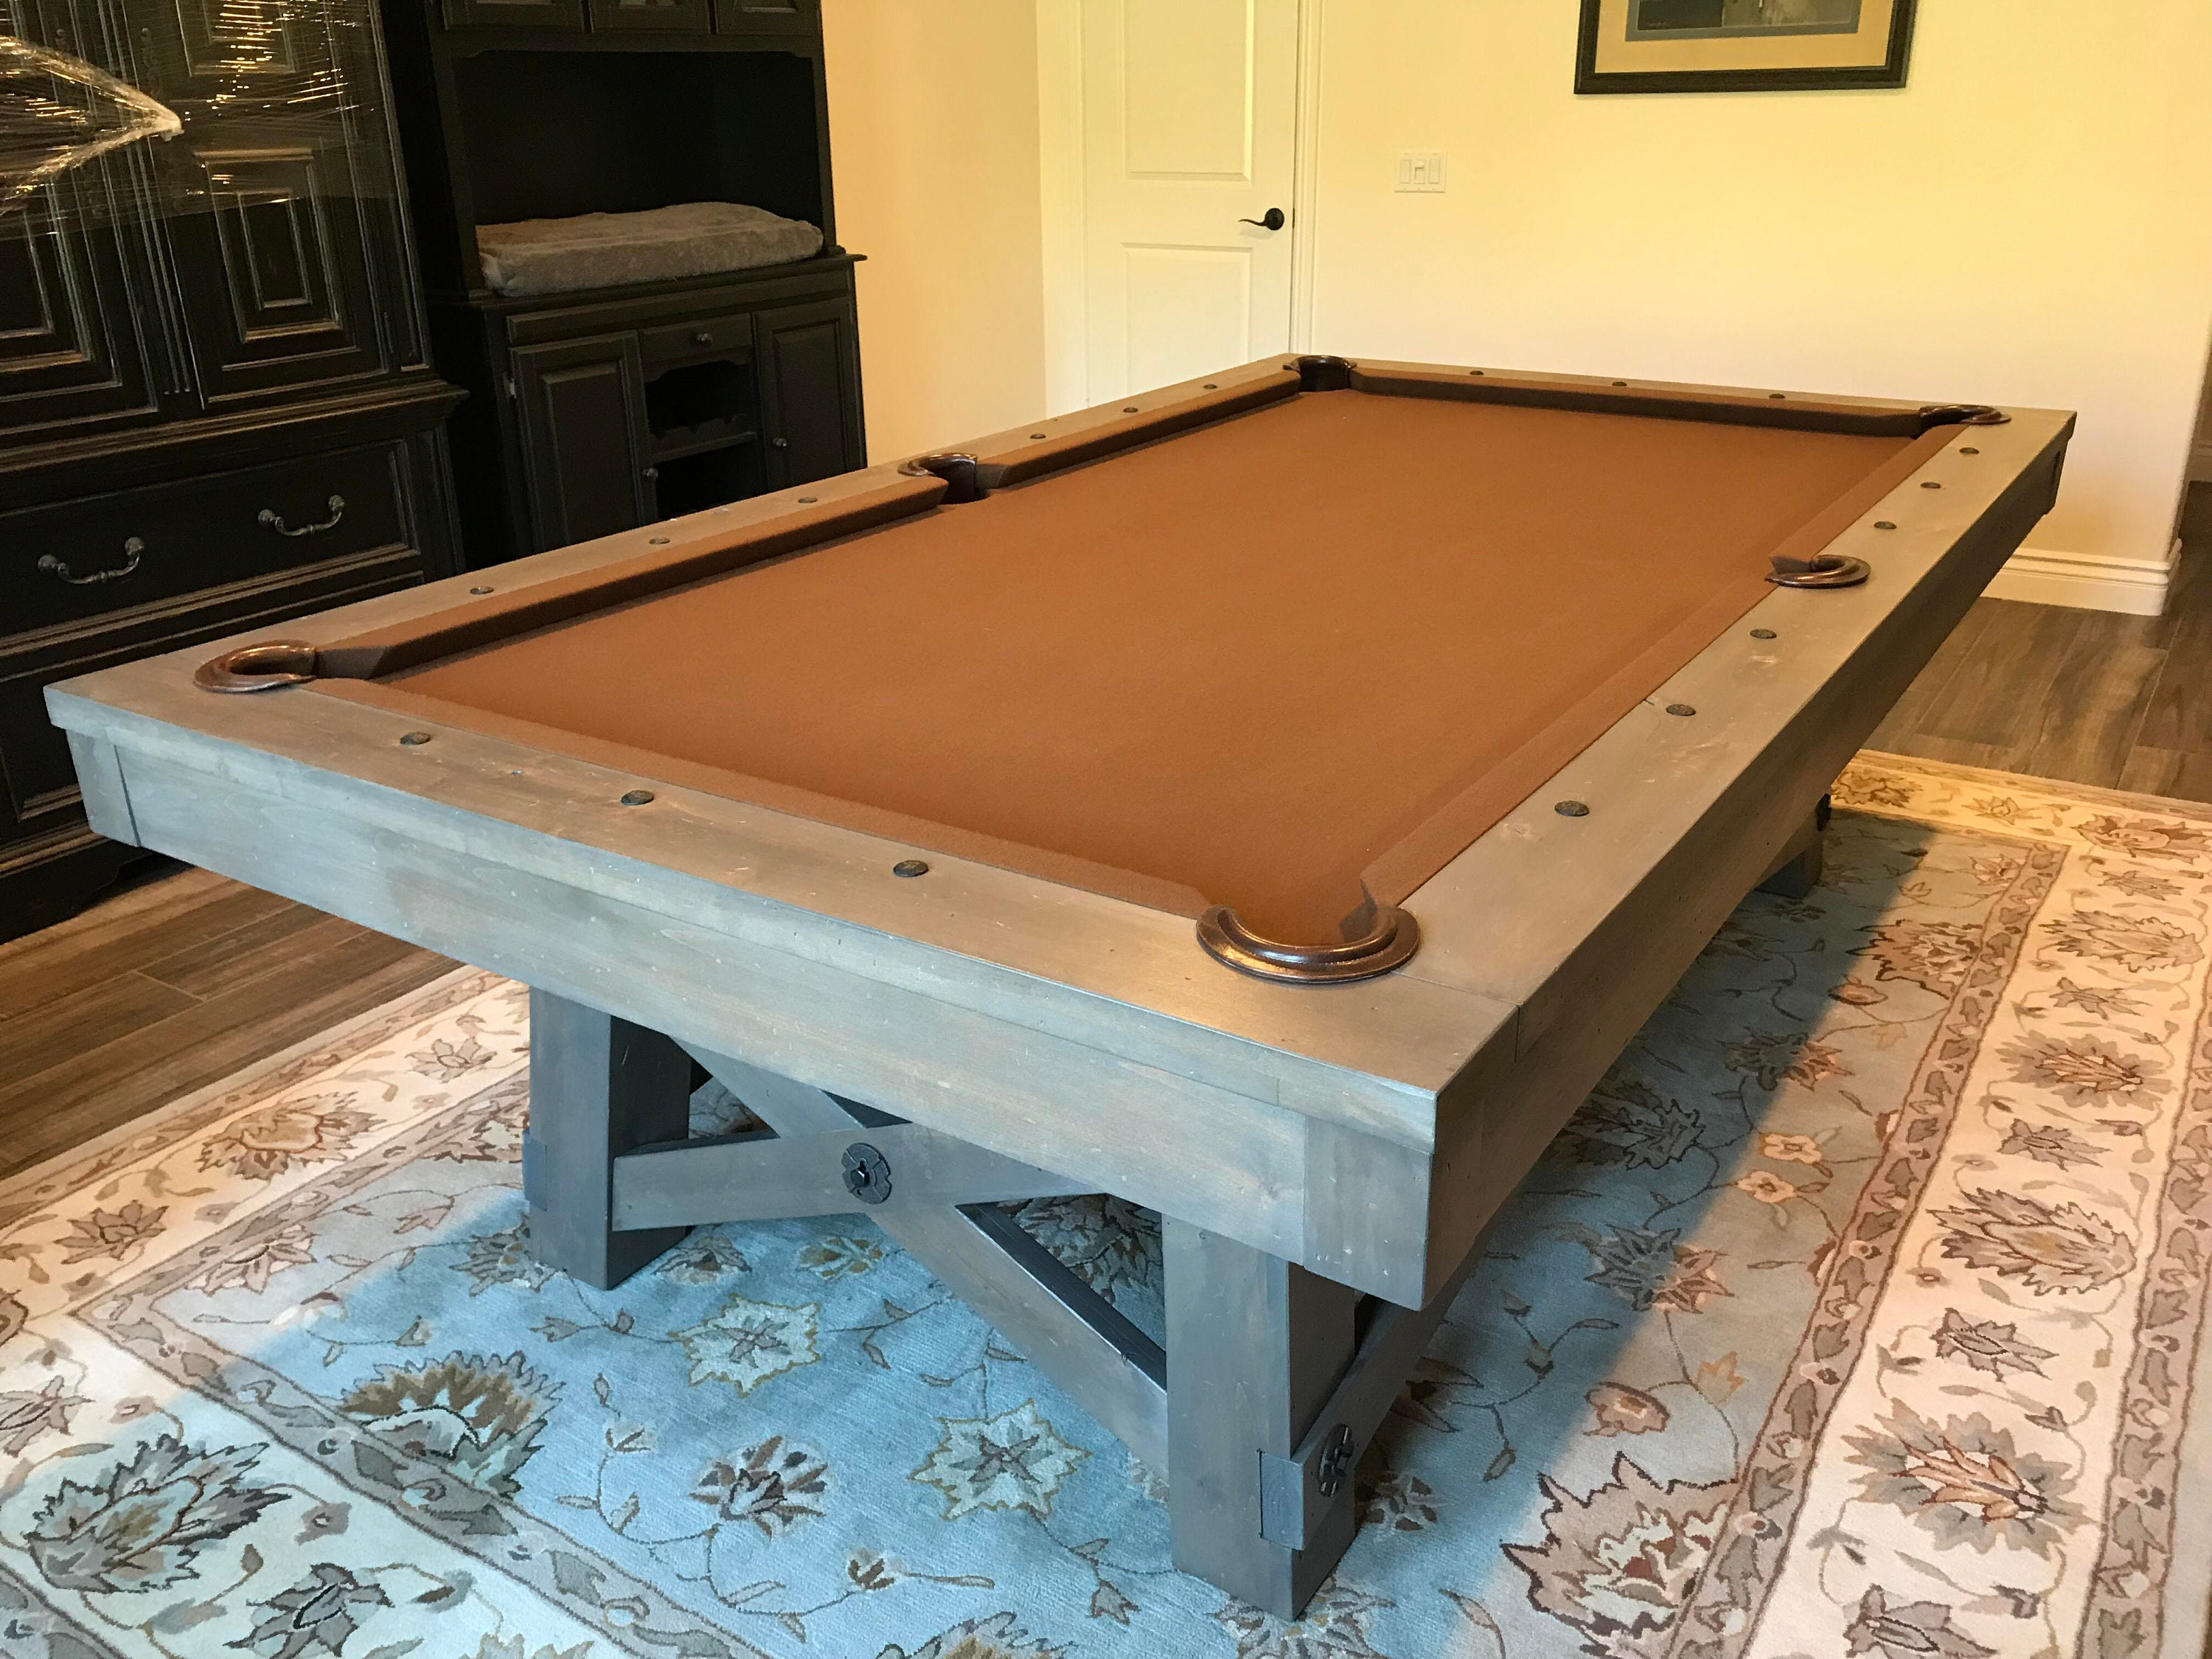 Billiards Pool Table Pool Game Man Cave Mancave Decor Game Room - Pool table in garage